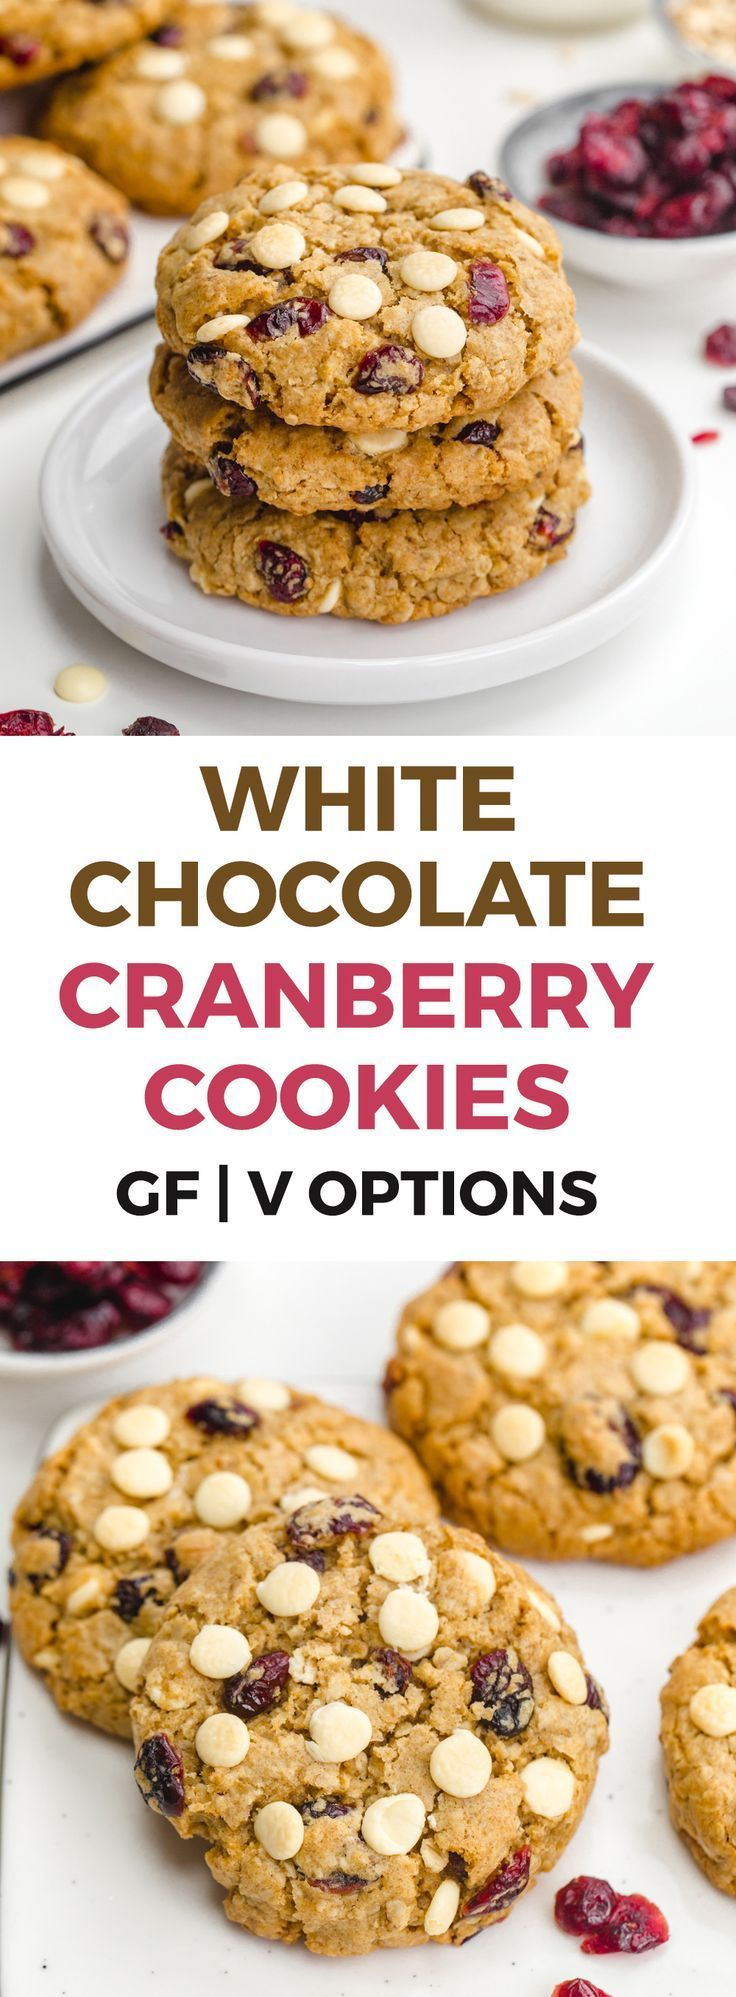 White chocolate cranberry cookies that are soft and chewy and packed with white chocolate chips and dried cranberries With vegan glutenfree and whole wheat options